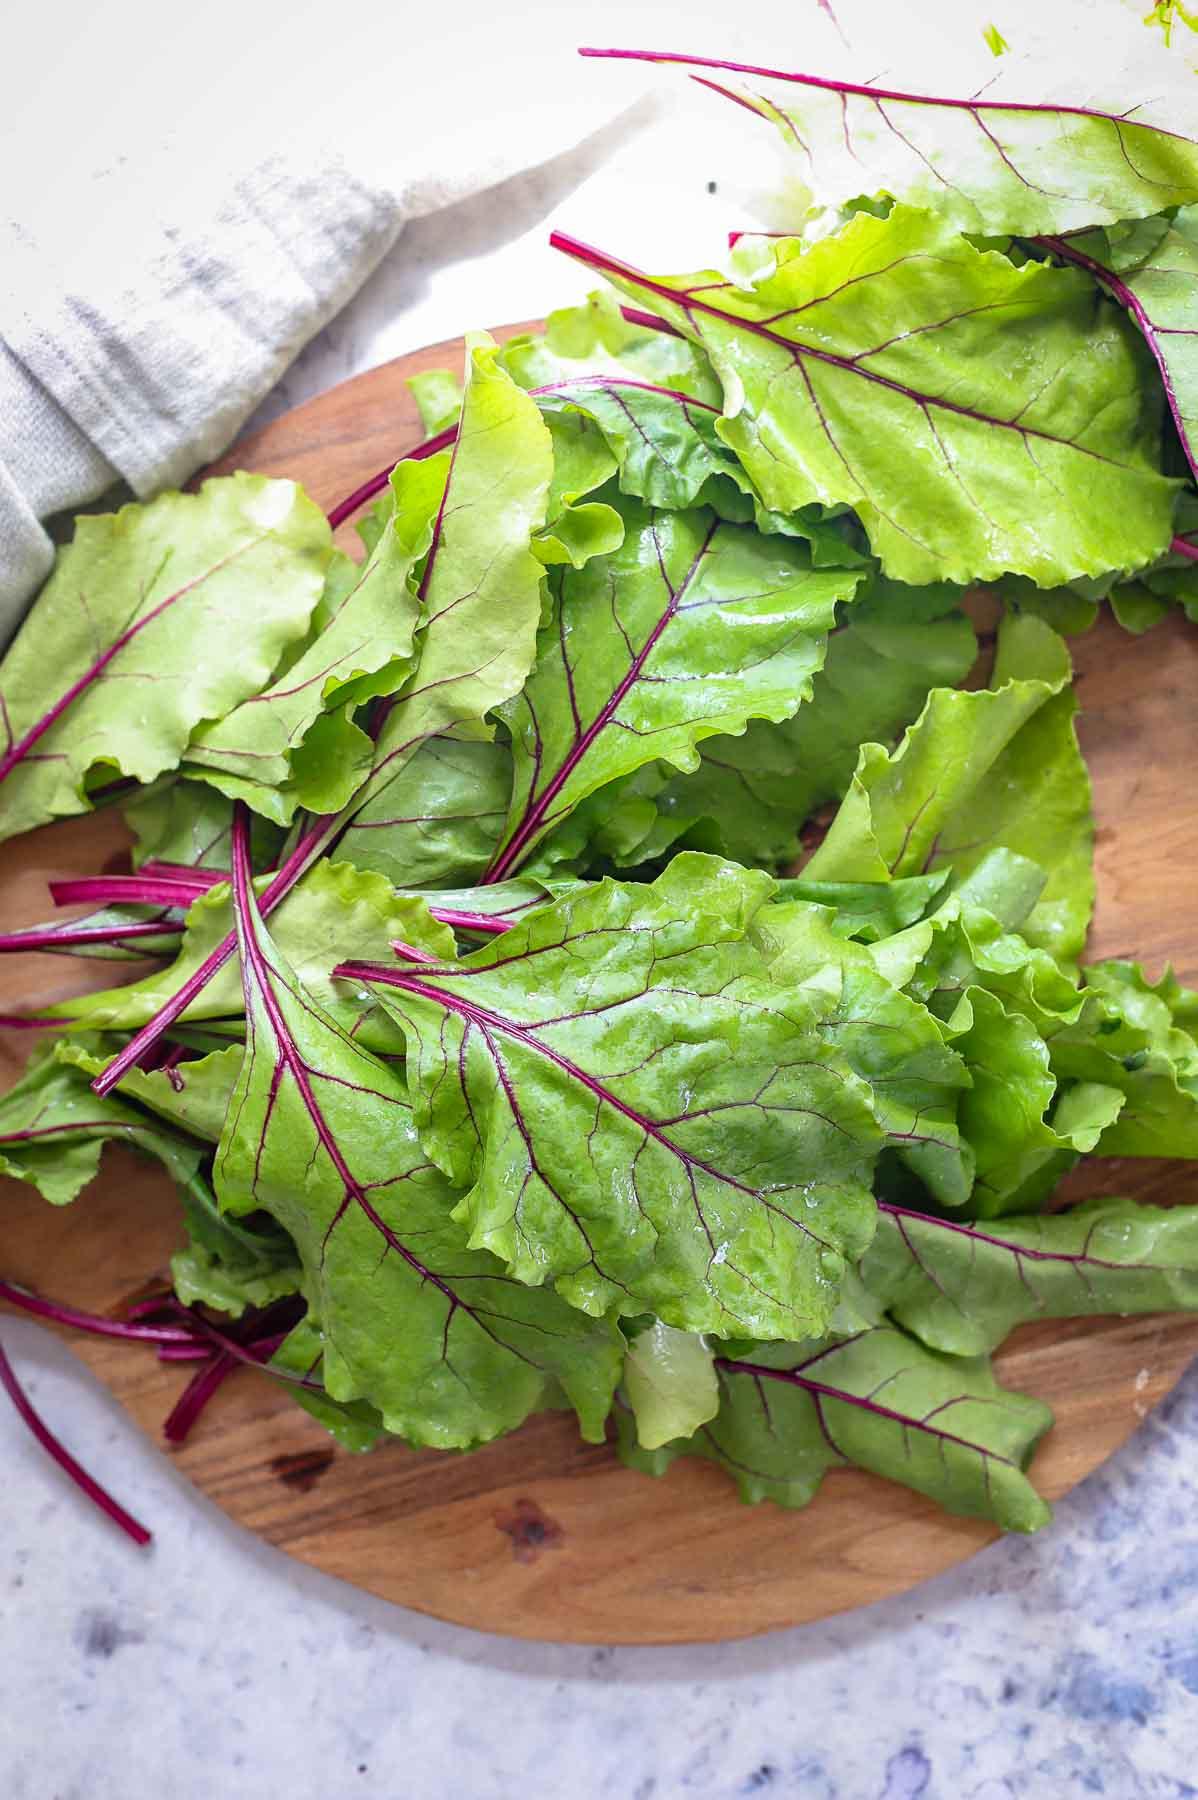 Beet greens for wok fried Asian-Style Beet Greens